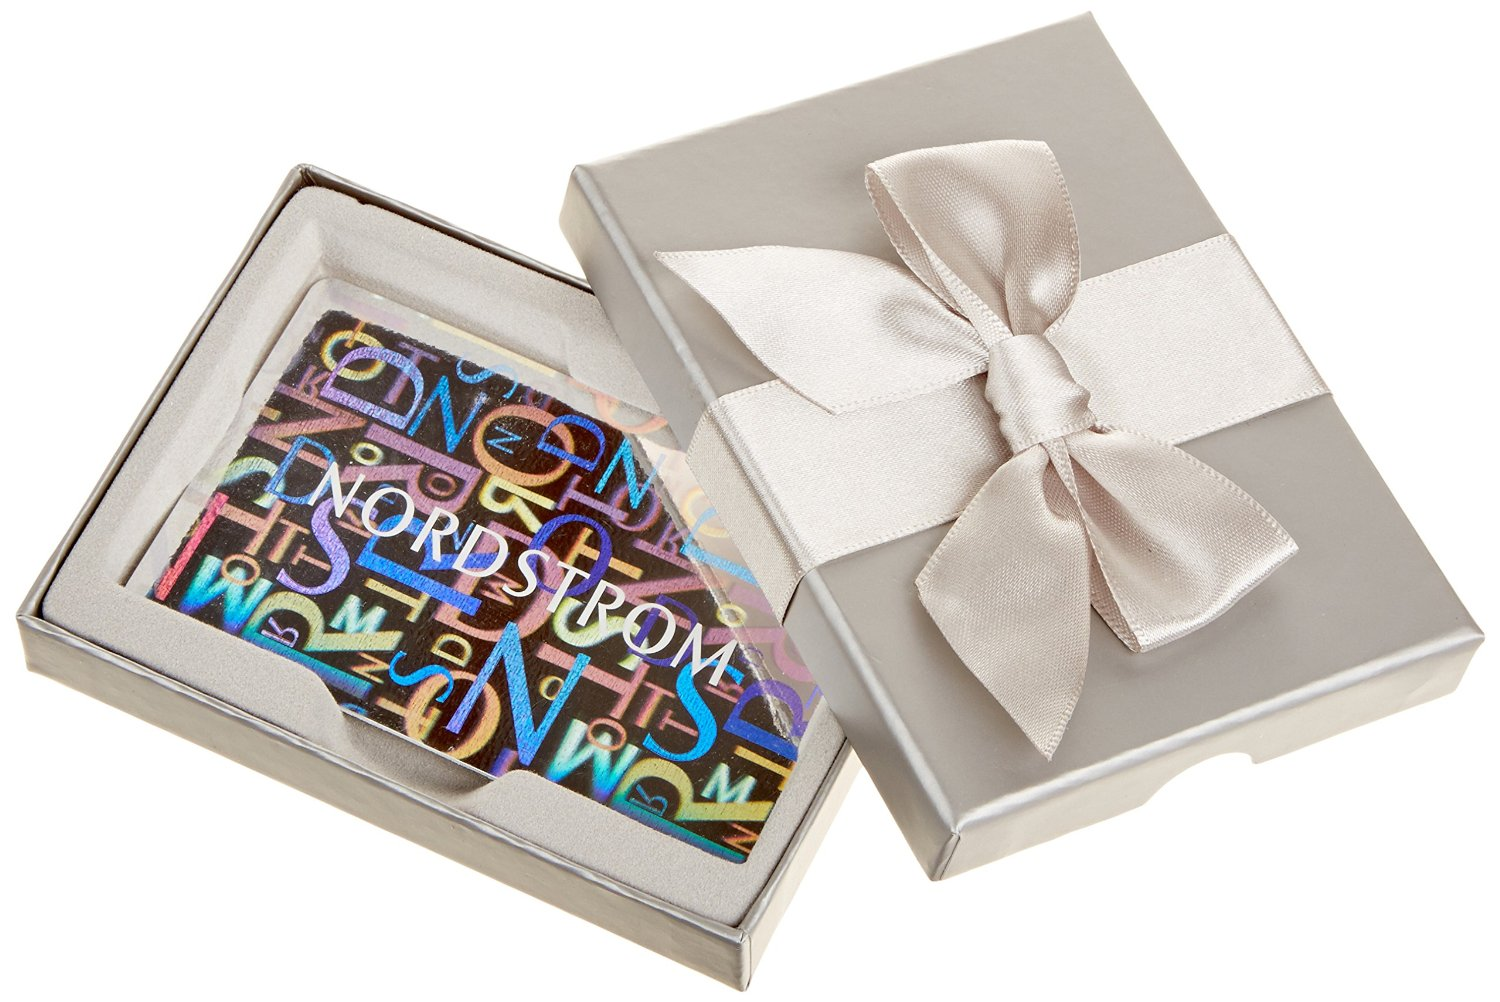 nordstrom-gift-cards-in-a-gift-box